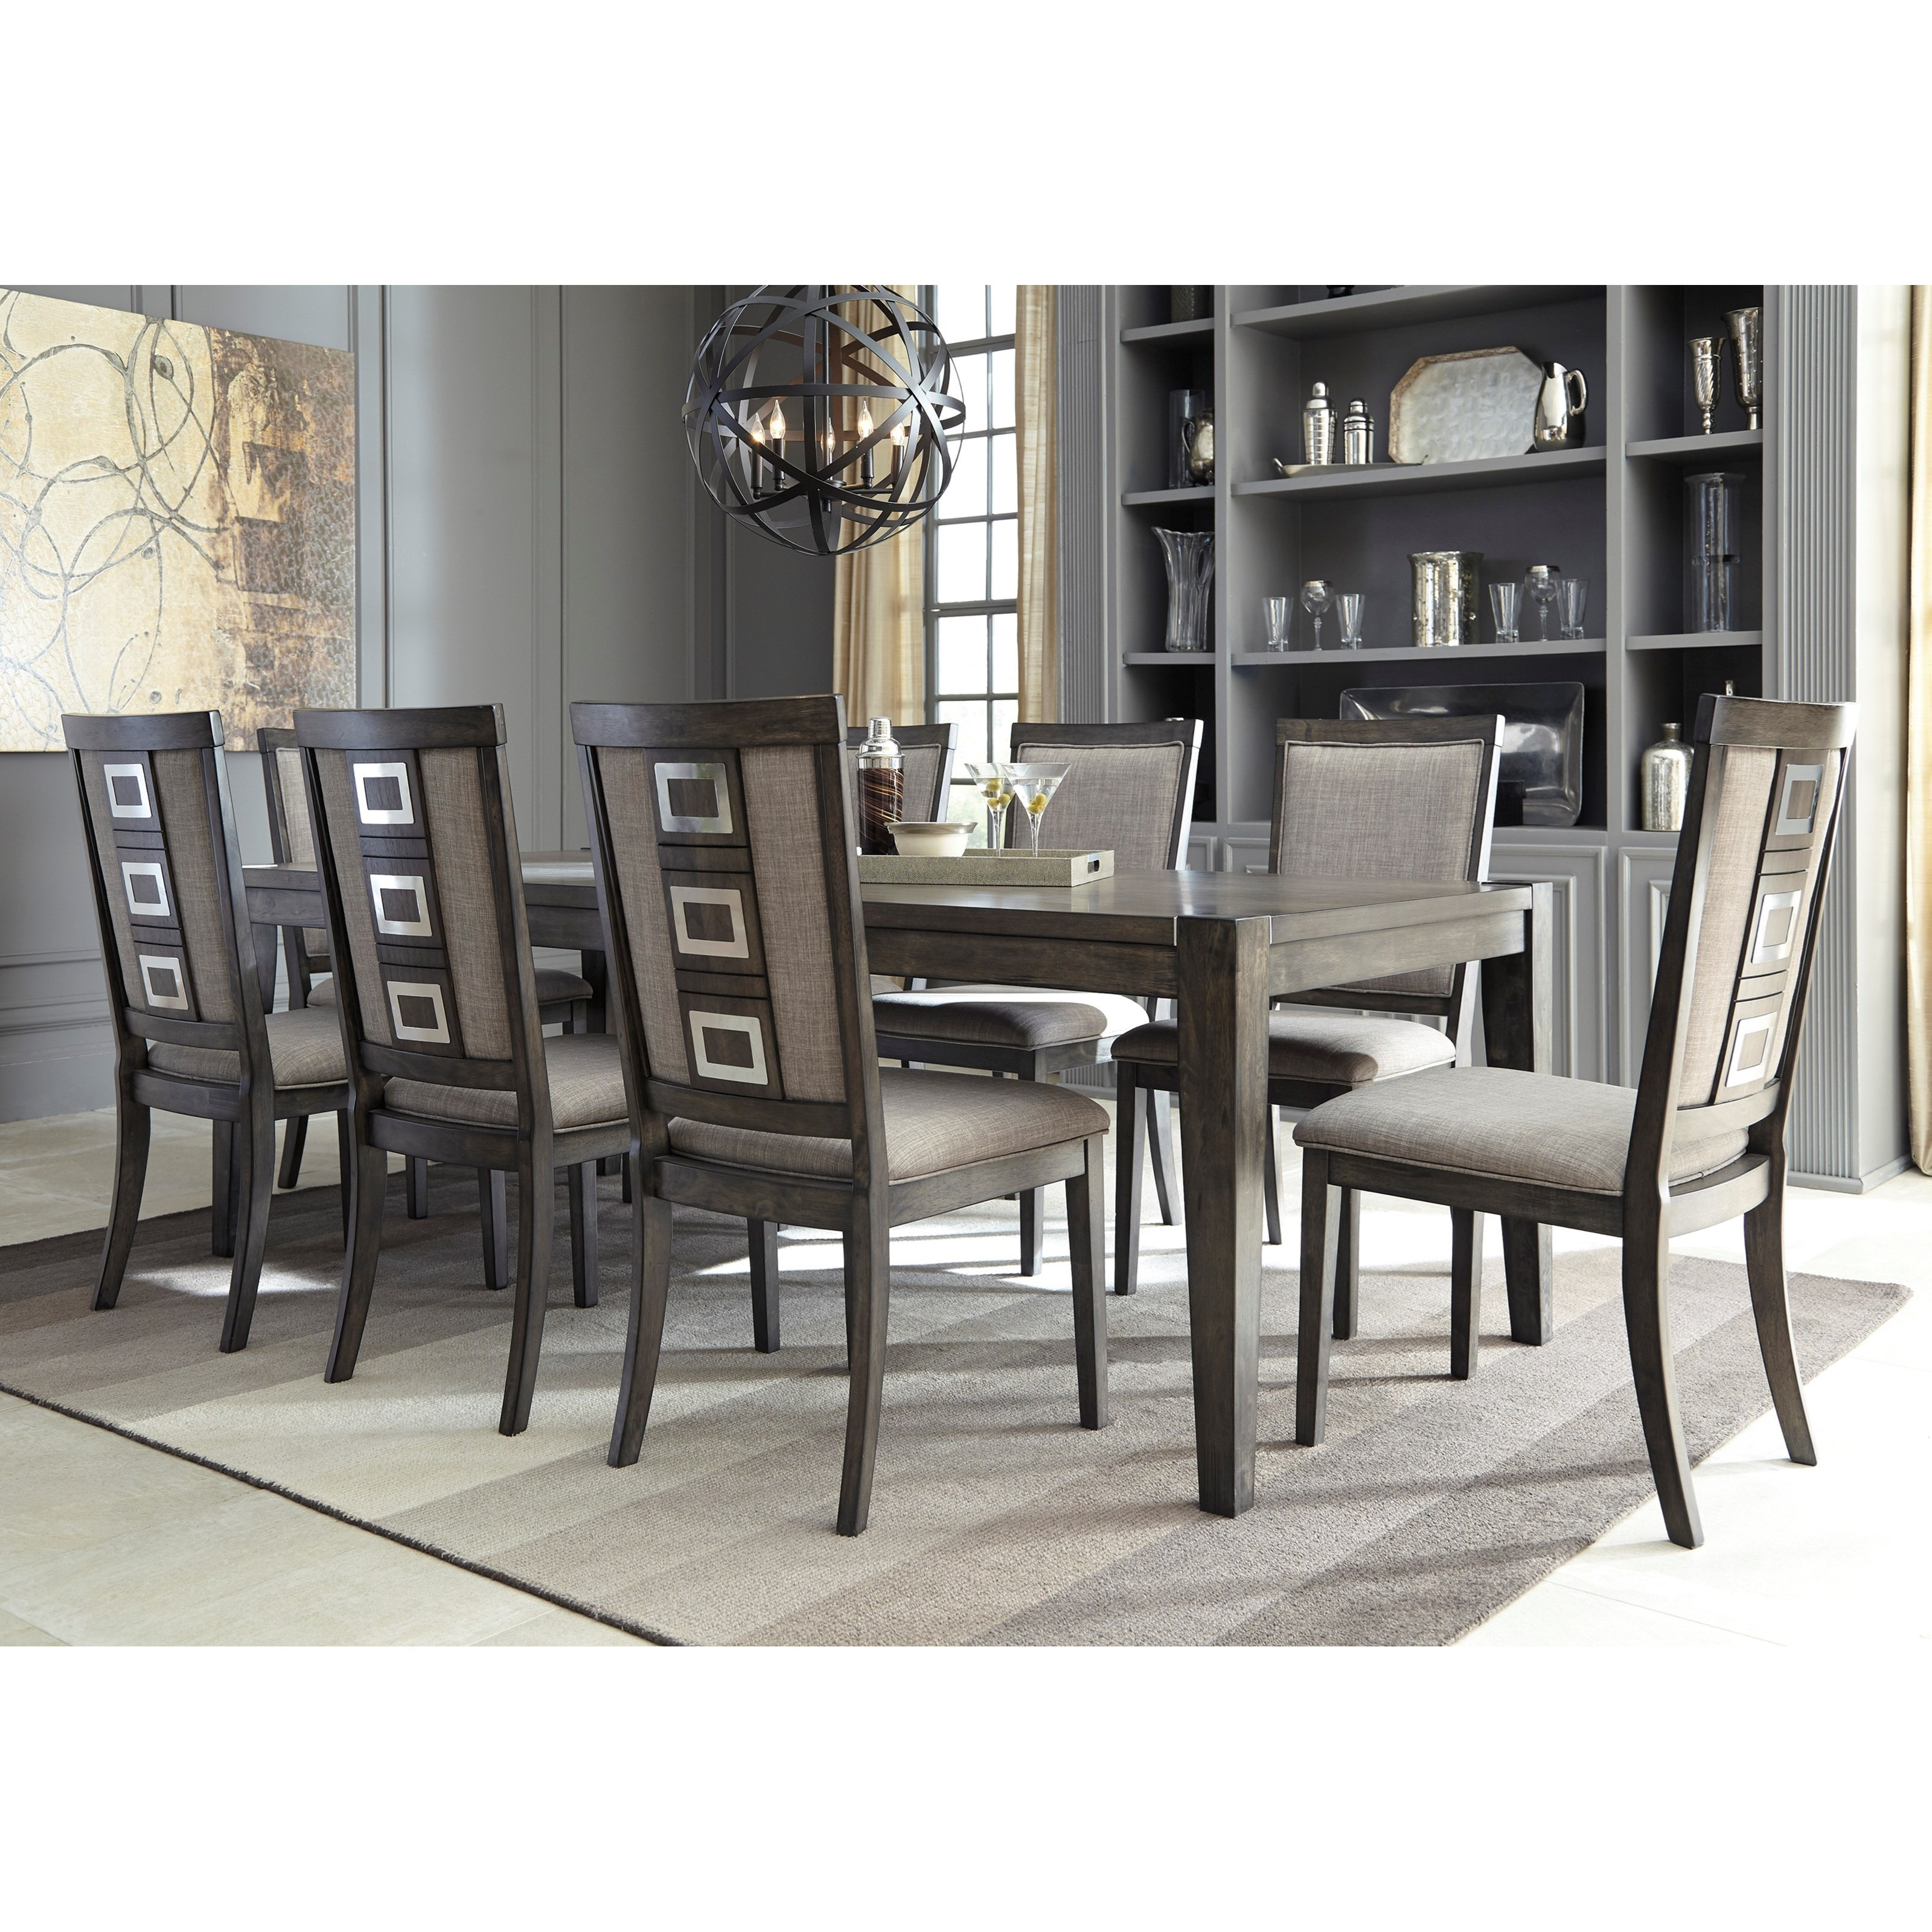 Signature design by ashley chadoni 9 piece contemporary for 2 piece dining room set